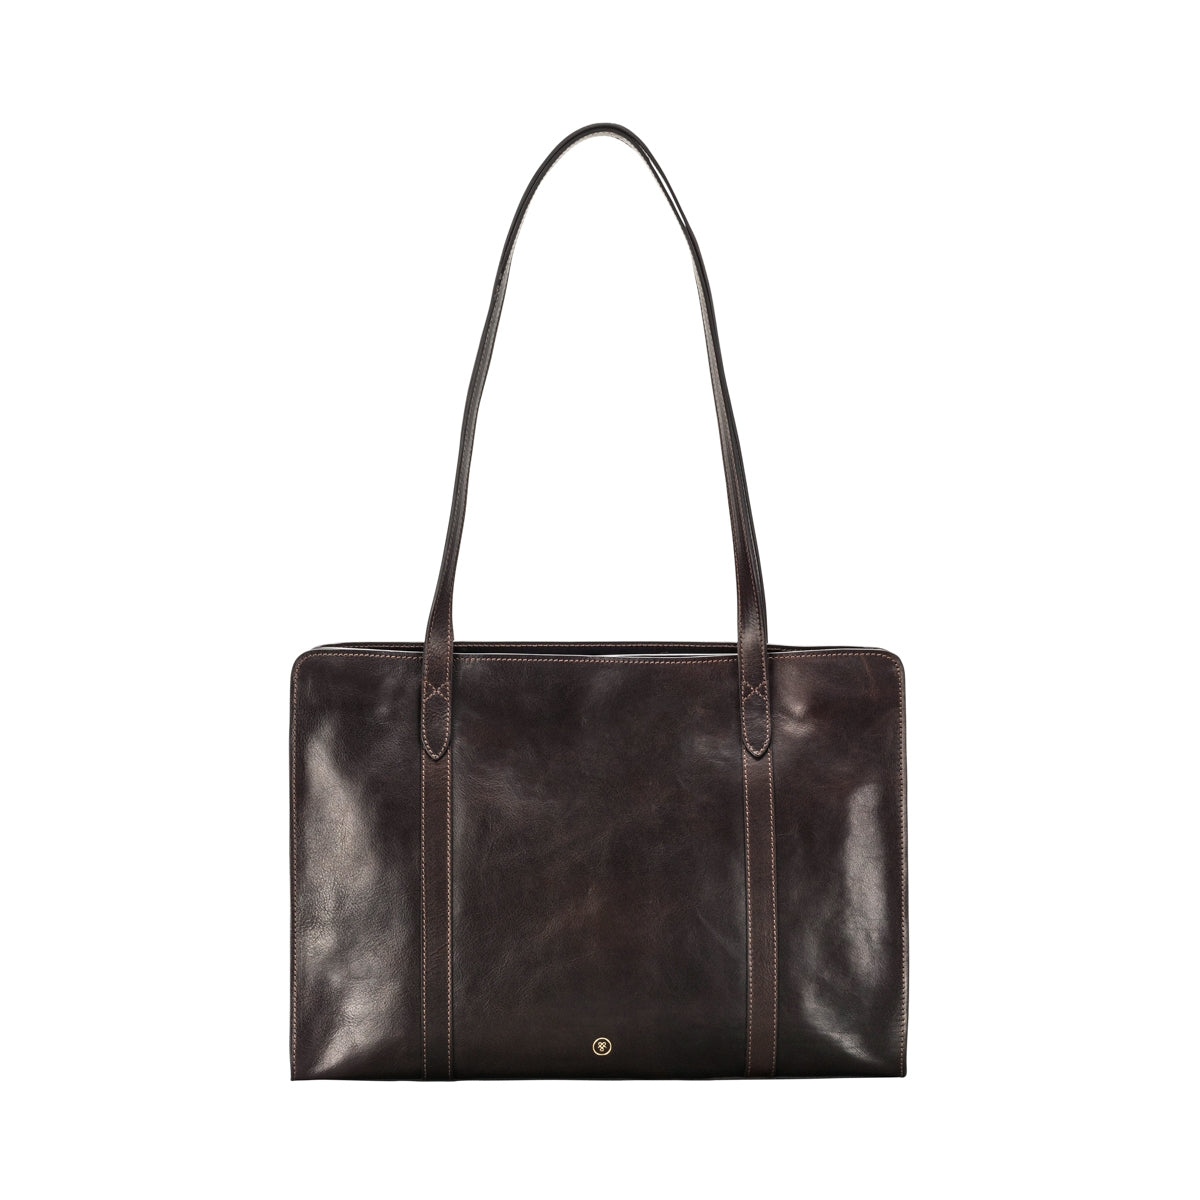 Image 1 of the 'Rivara' Large Dark Chocolate Veg-Tanned Leather Shoulder Bag